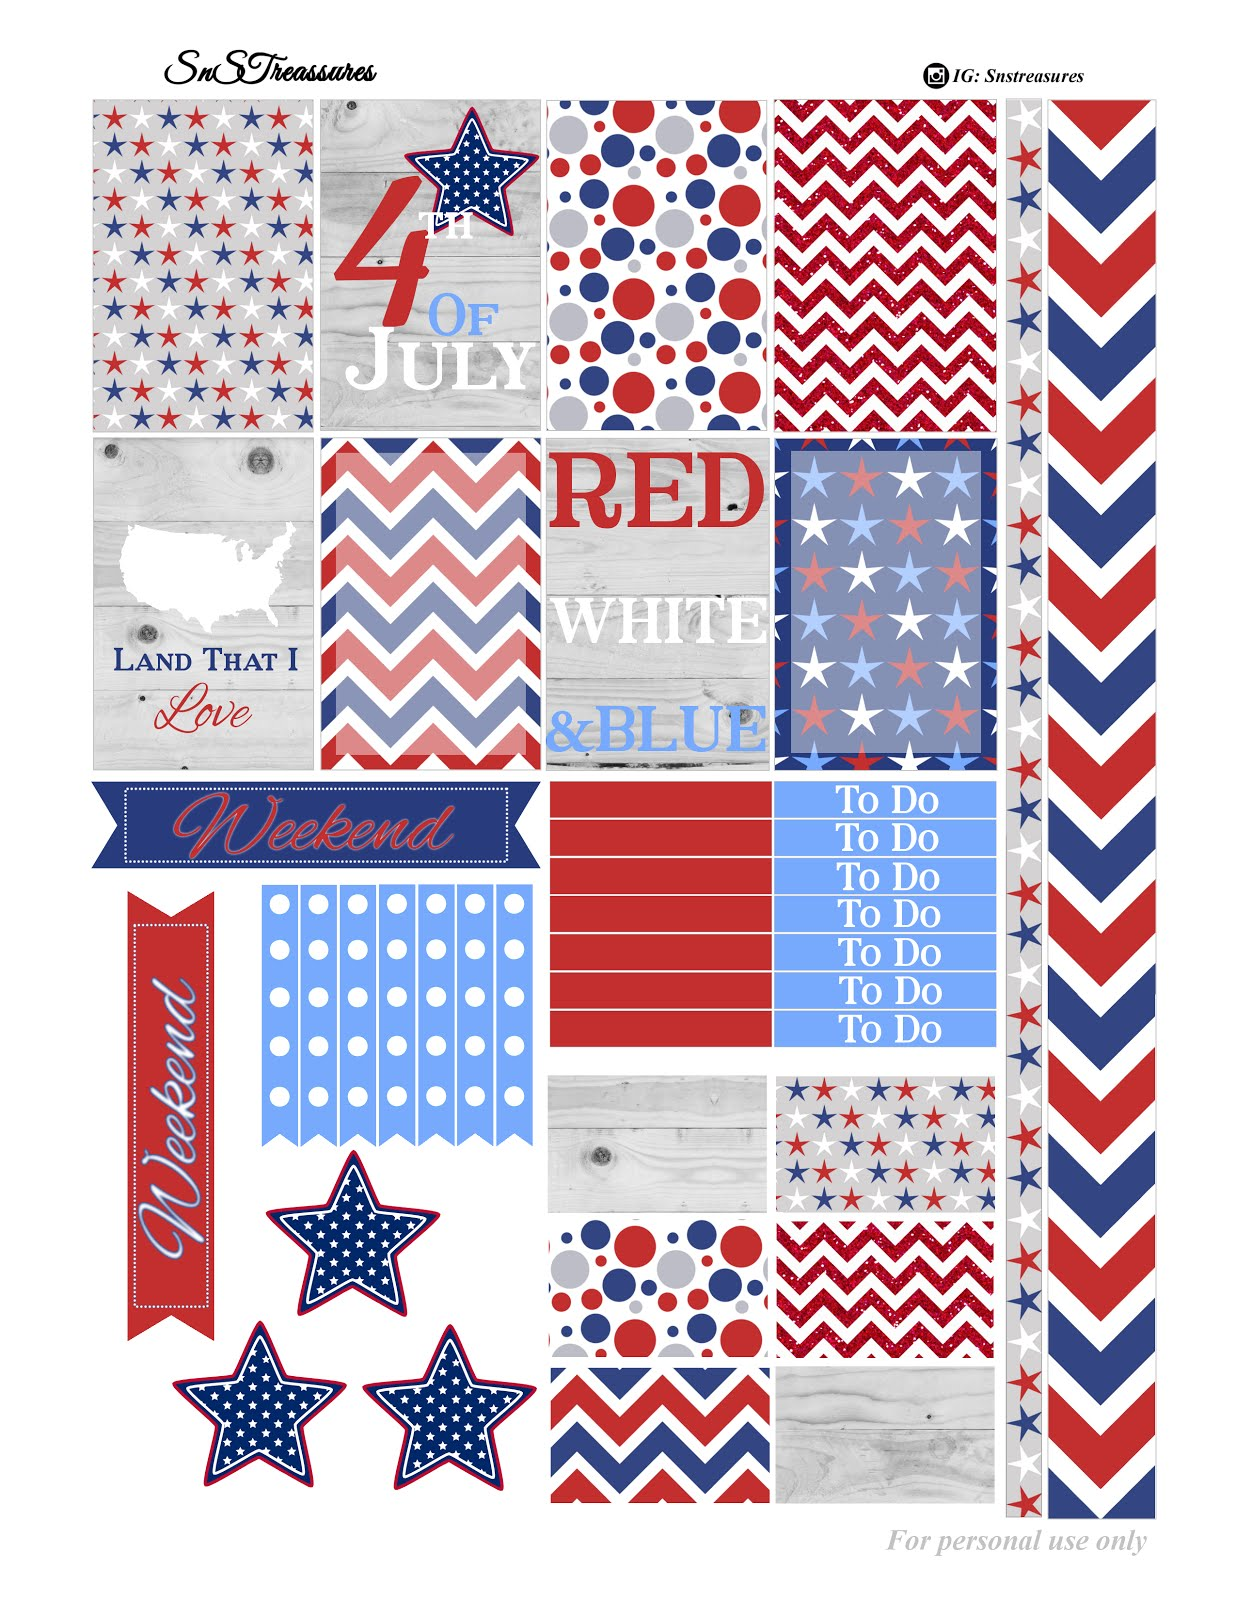 4th Of July Printable Snstreasures